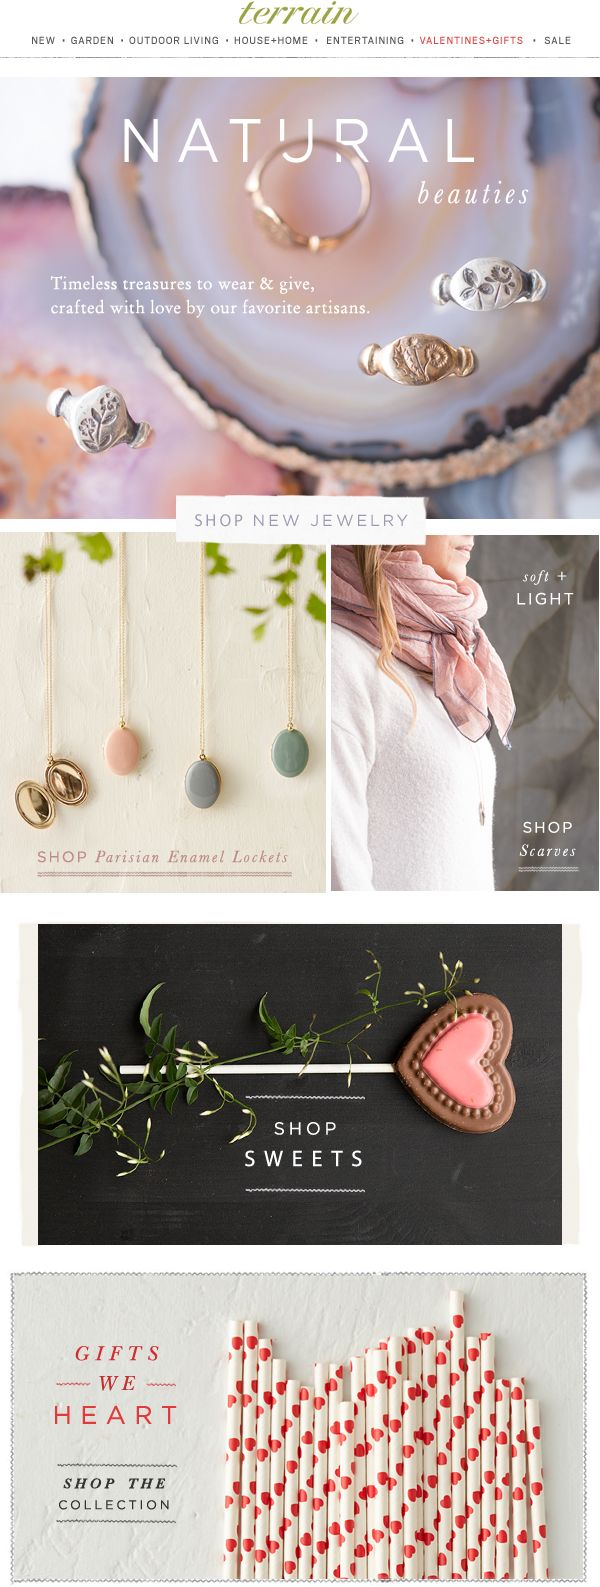 A #jewelry collection of #natural beauties, crafted with love by our favorite #artisans at #shopterrain January 30